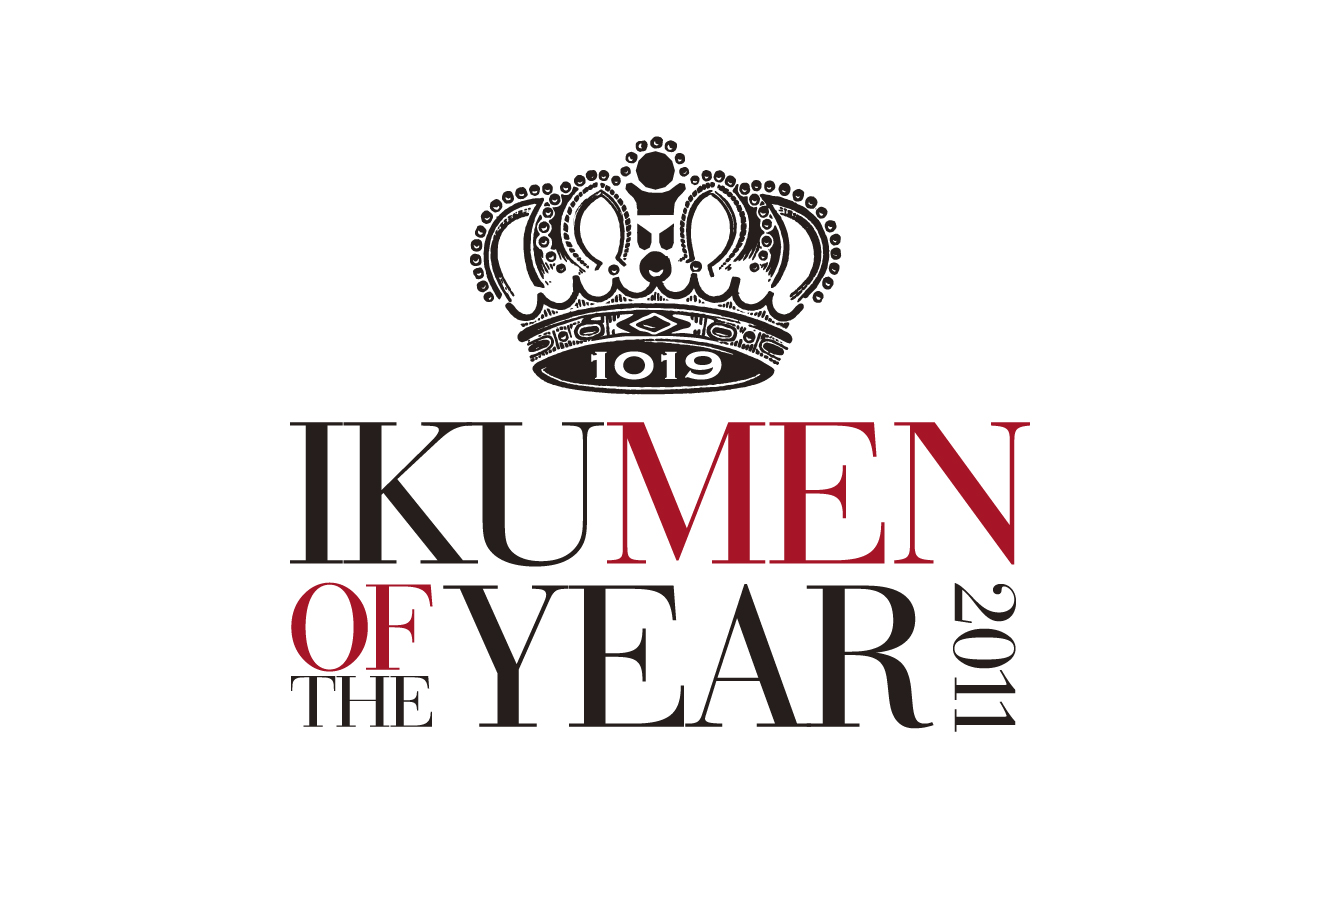 IKUMEN OF THE YEAR